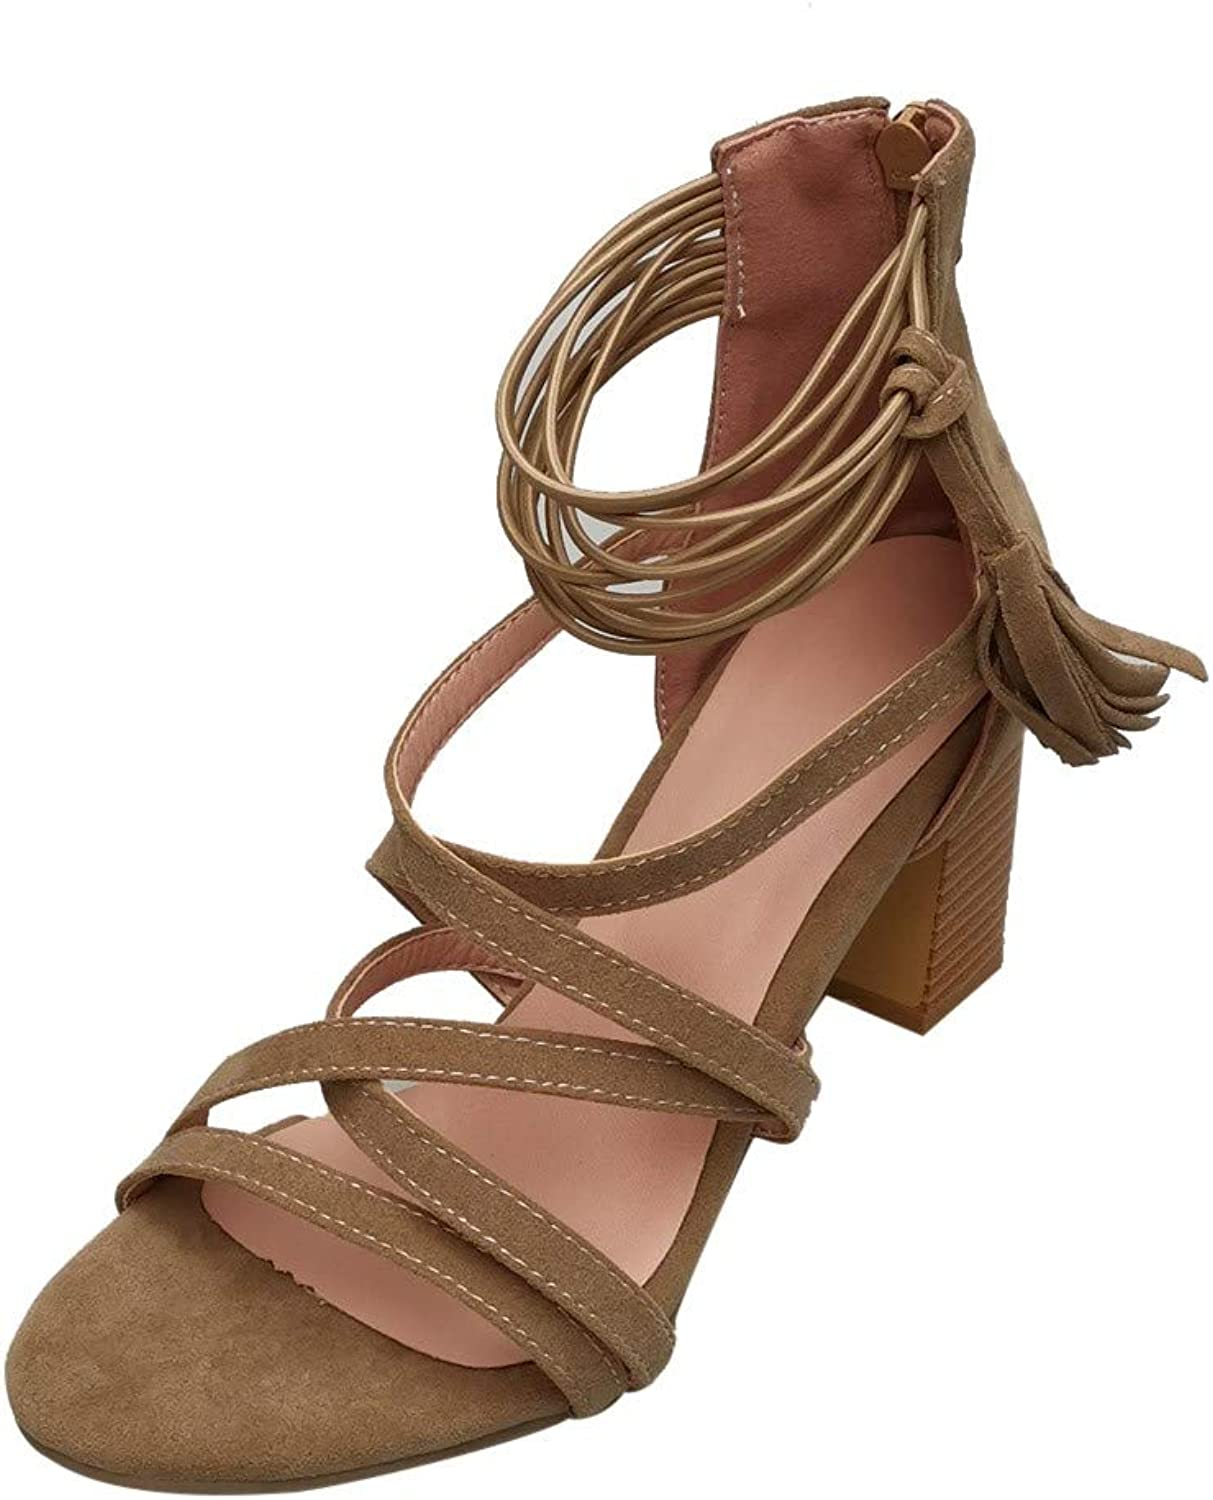 Youngh Women Fashion Thick Heel Cross Strappy Tassel High Heels shoes Lace-Up Sandals Open Toe Sandals with Ankle Strap